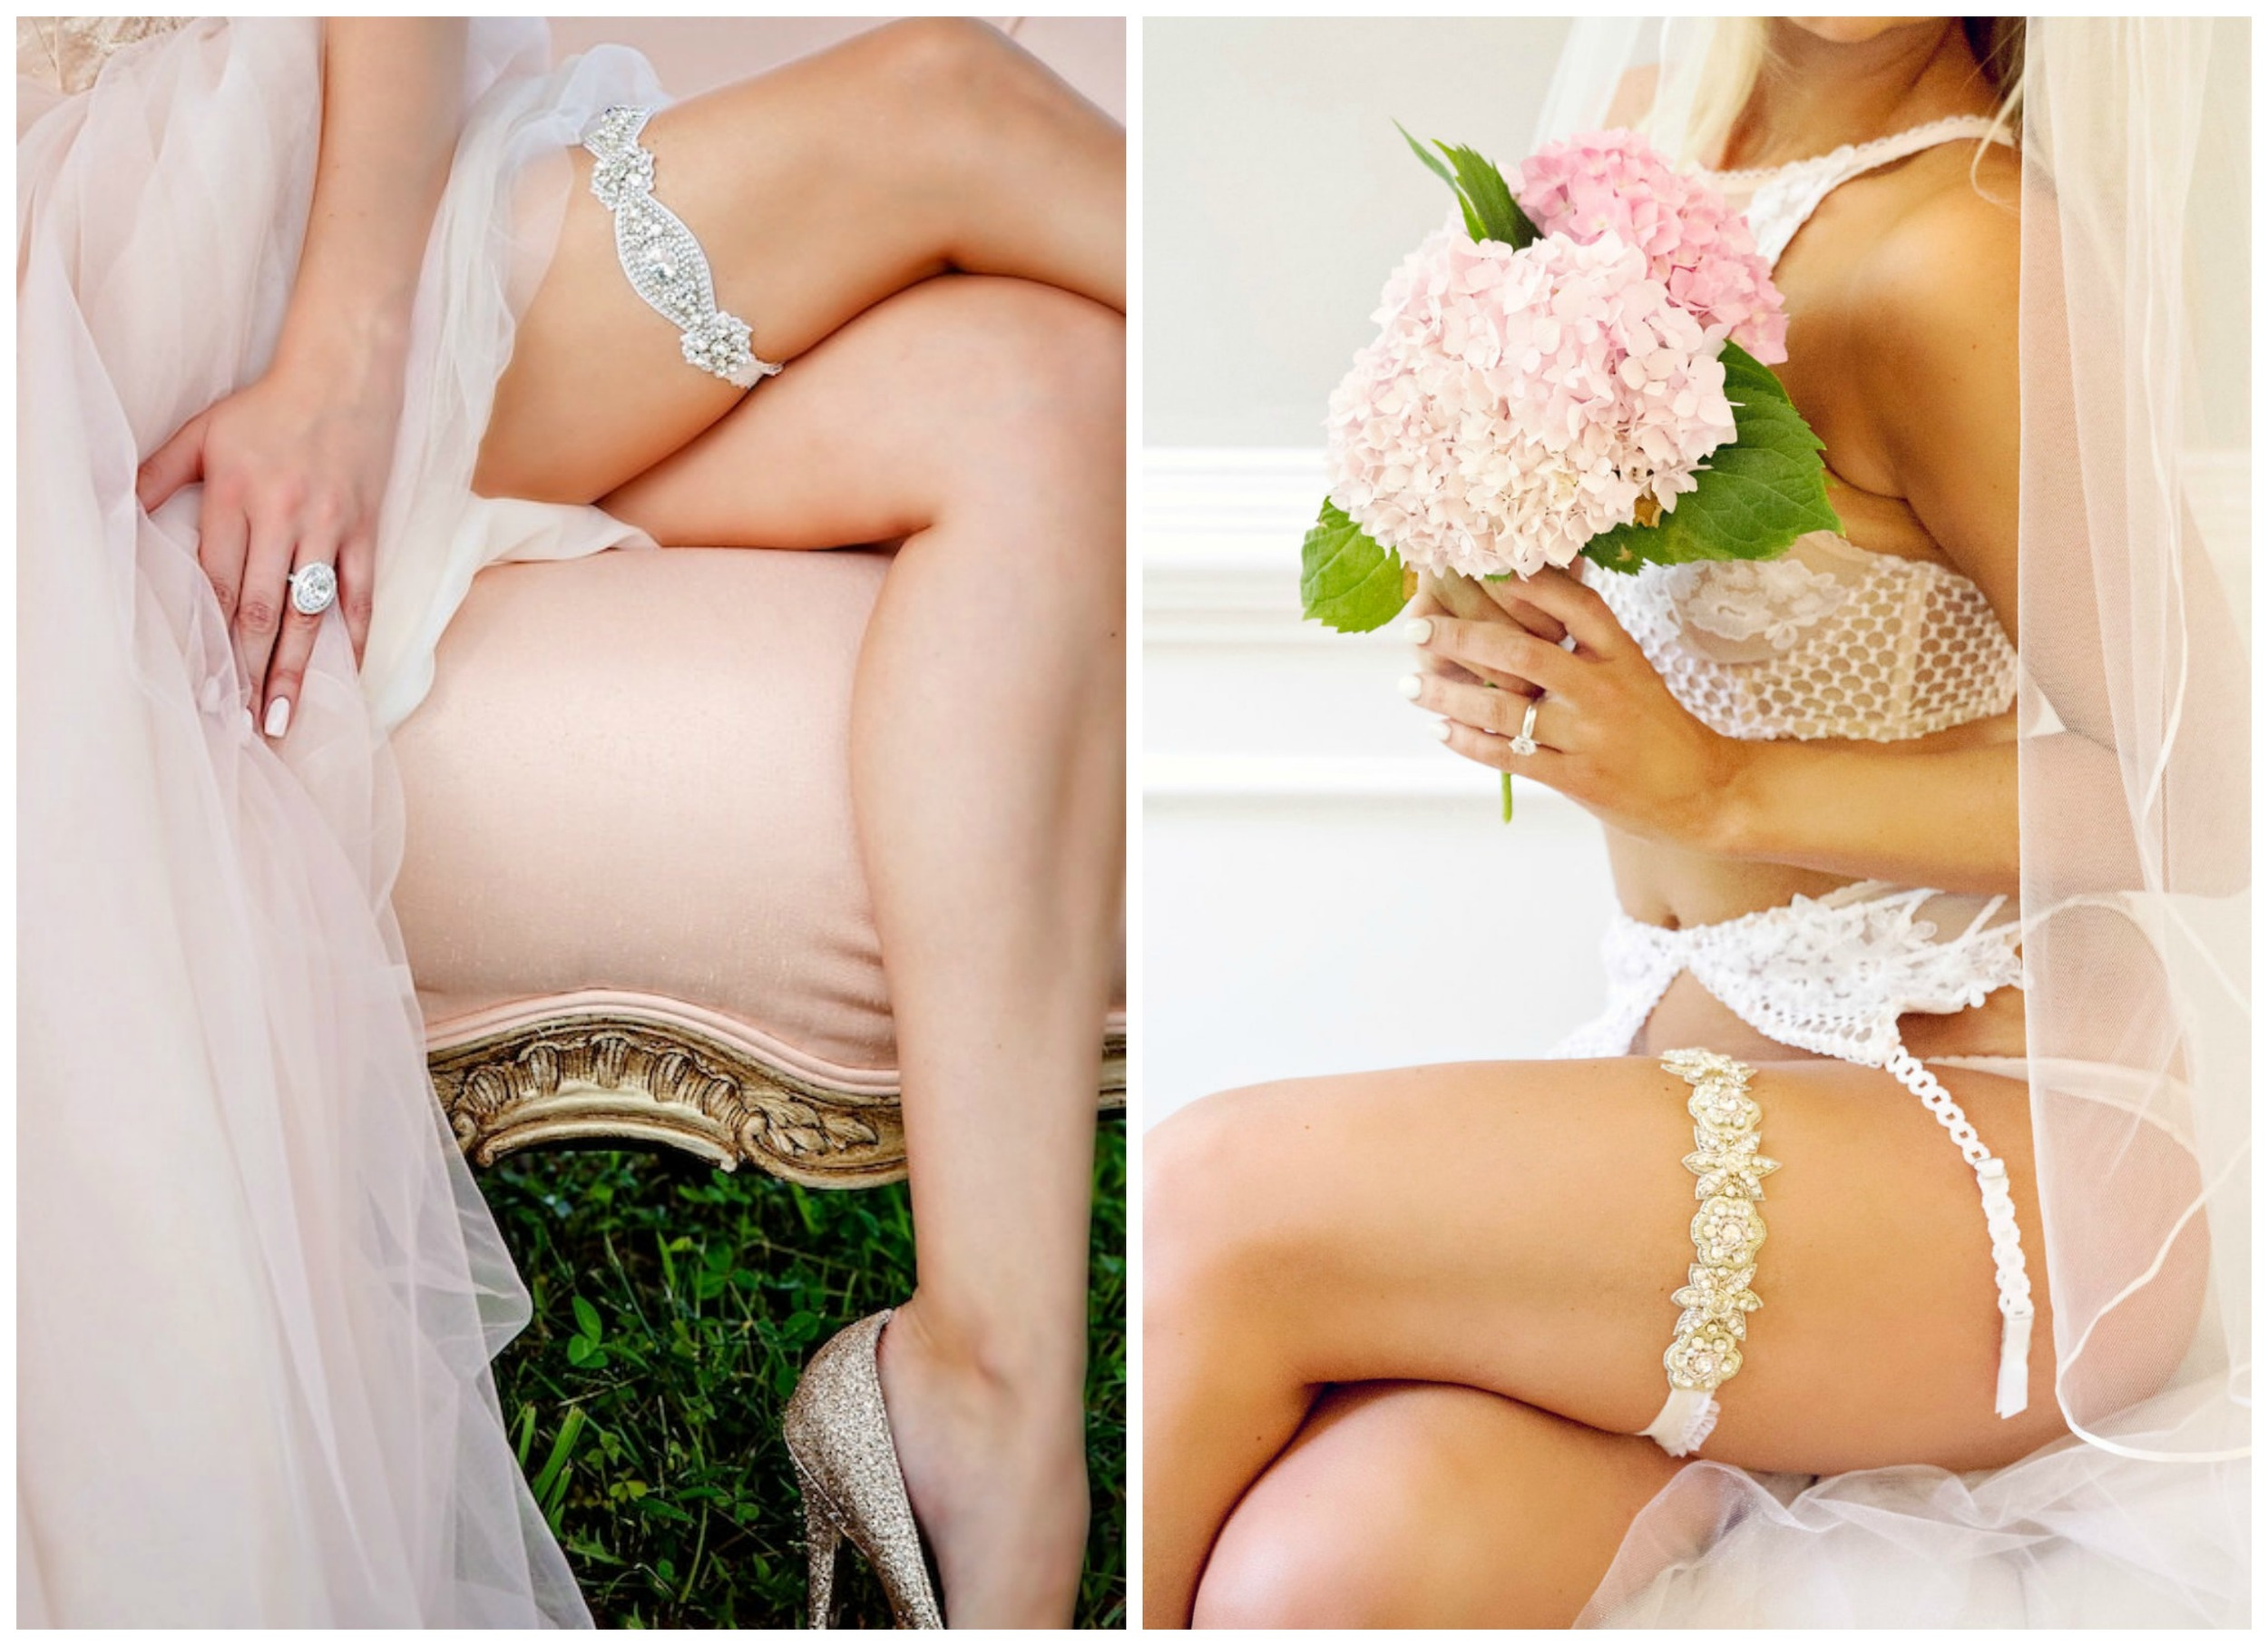 La Gartier Custom Garters . This company makes the most beautiful garters I've ever seen. They're glamorous, and they're not cheap... but you only get married once, right?!